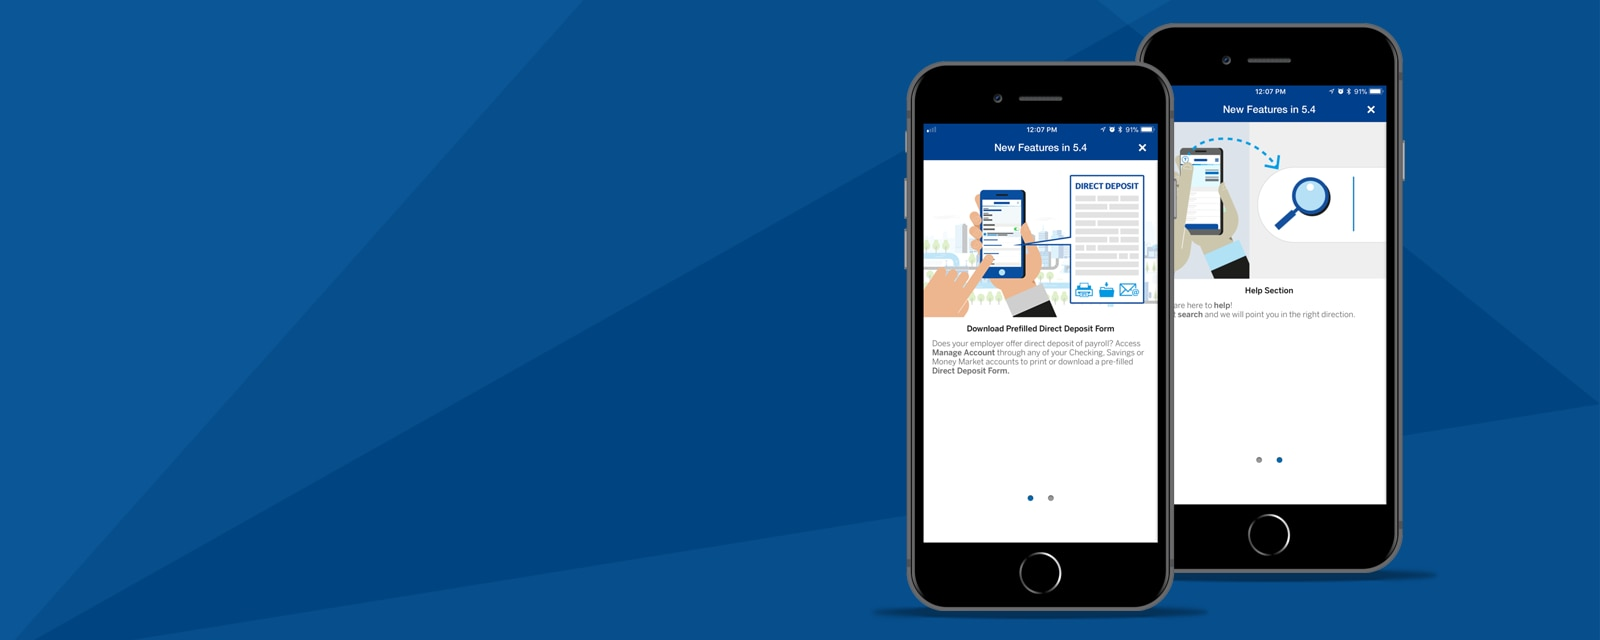 bbva compass direct deposit form BBVA Compass Mobile Banking App version 5.4 with all new ...